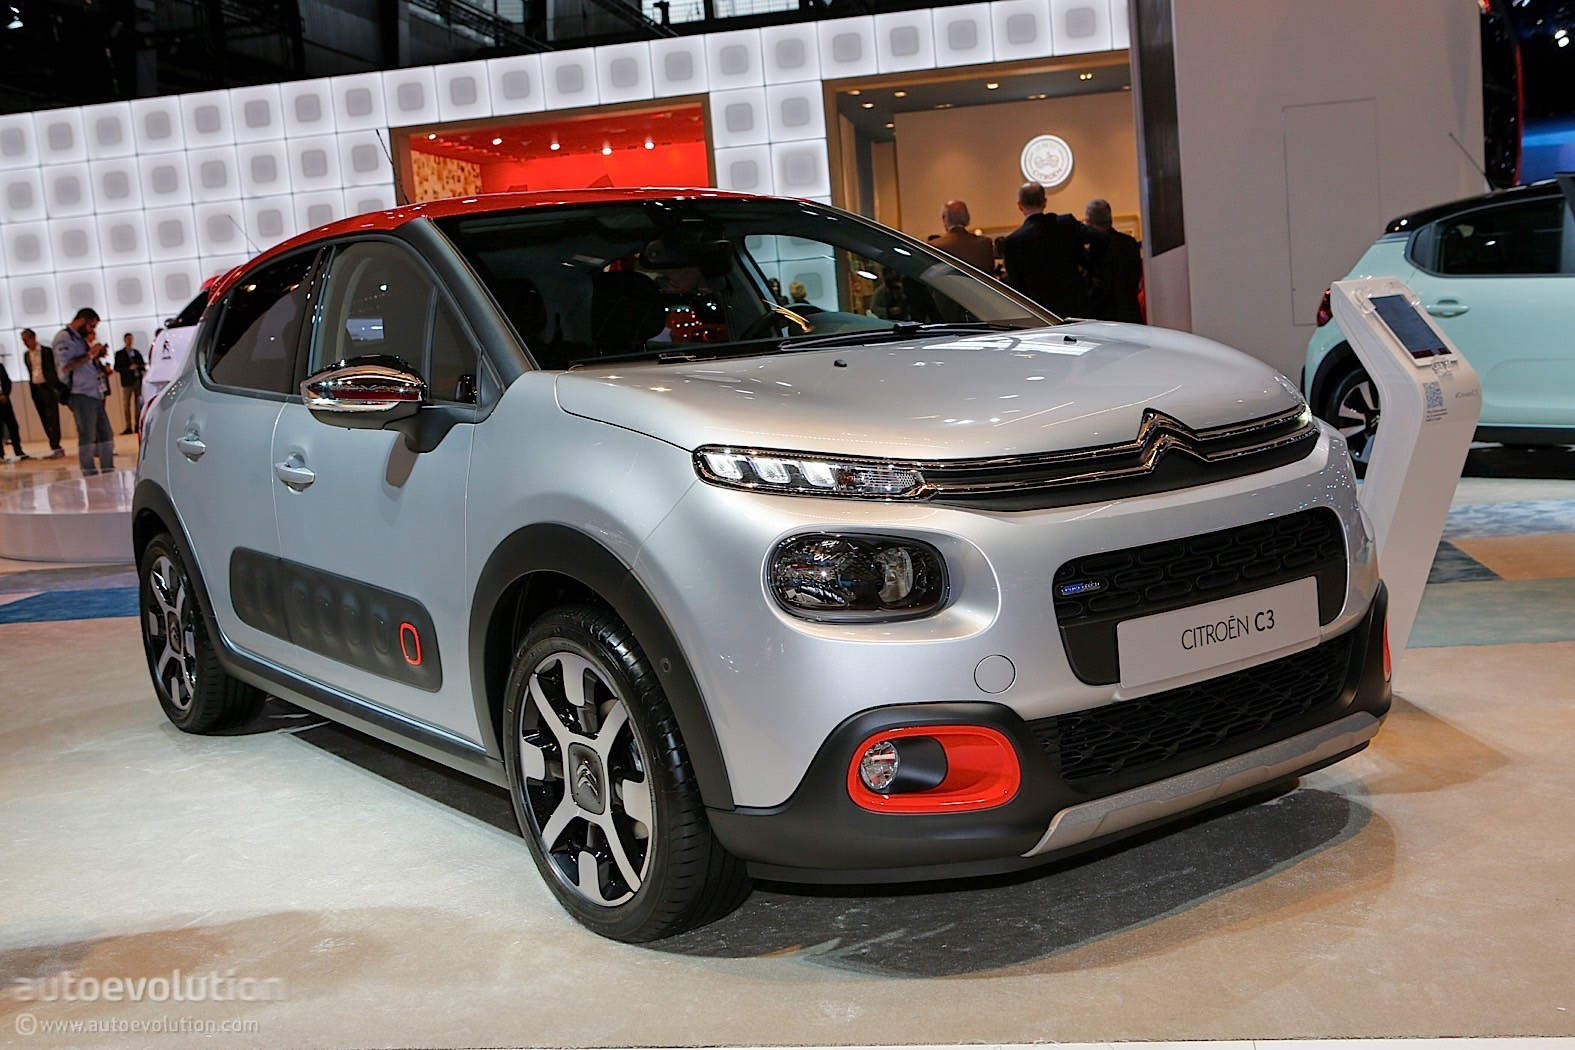 2017 citroen c3 kind of looks like robocop 39 s helmet in paris autoevolution. Black Bedroom Furniture Sets. Home Design Ideas